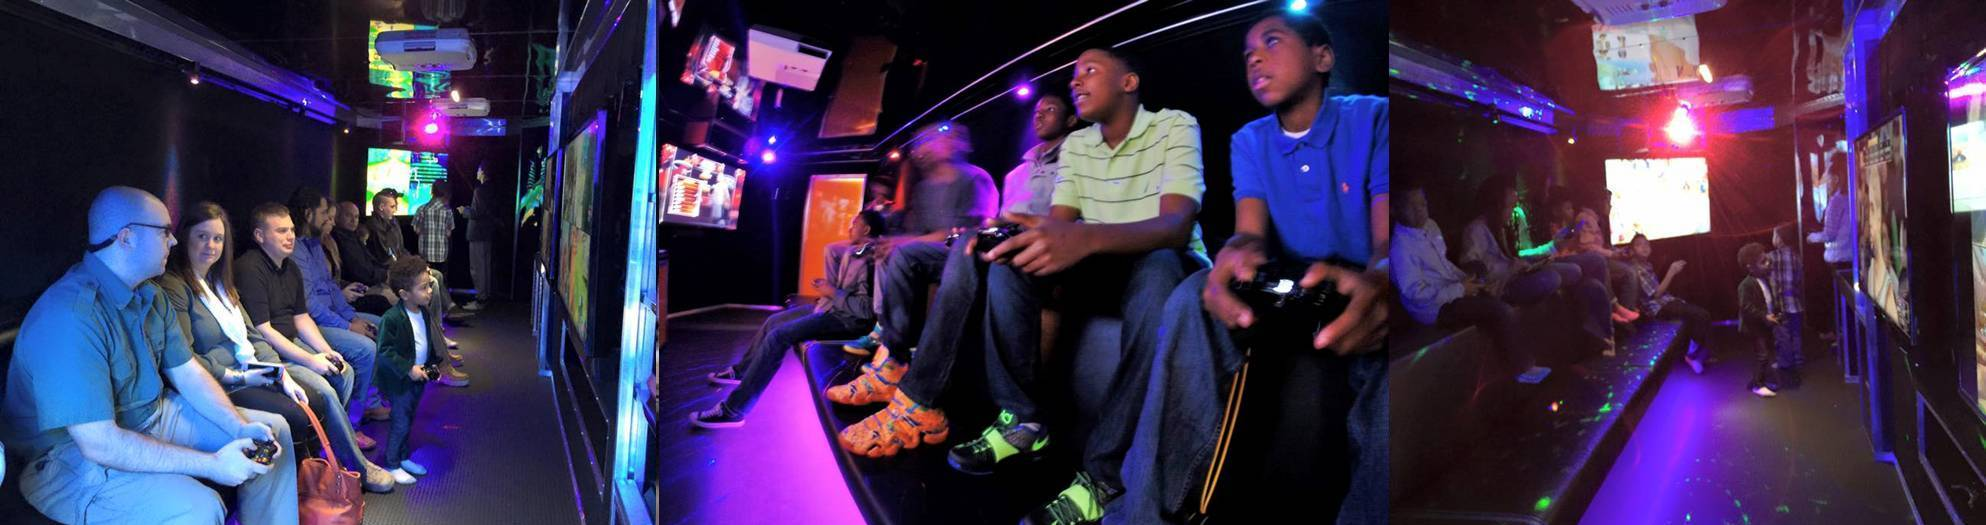 Find a video game truck near me and book a video game party